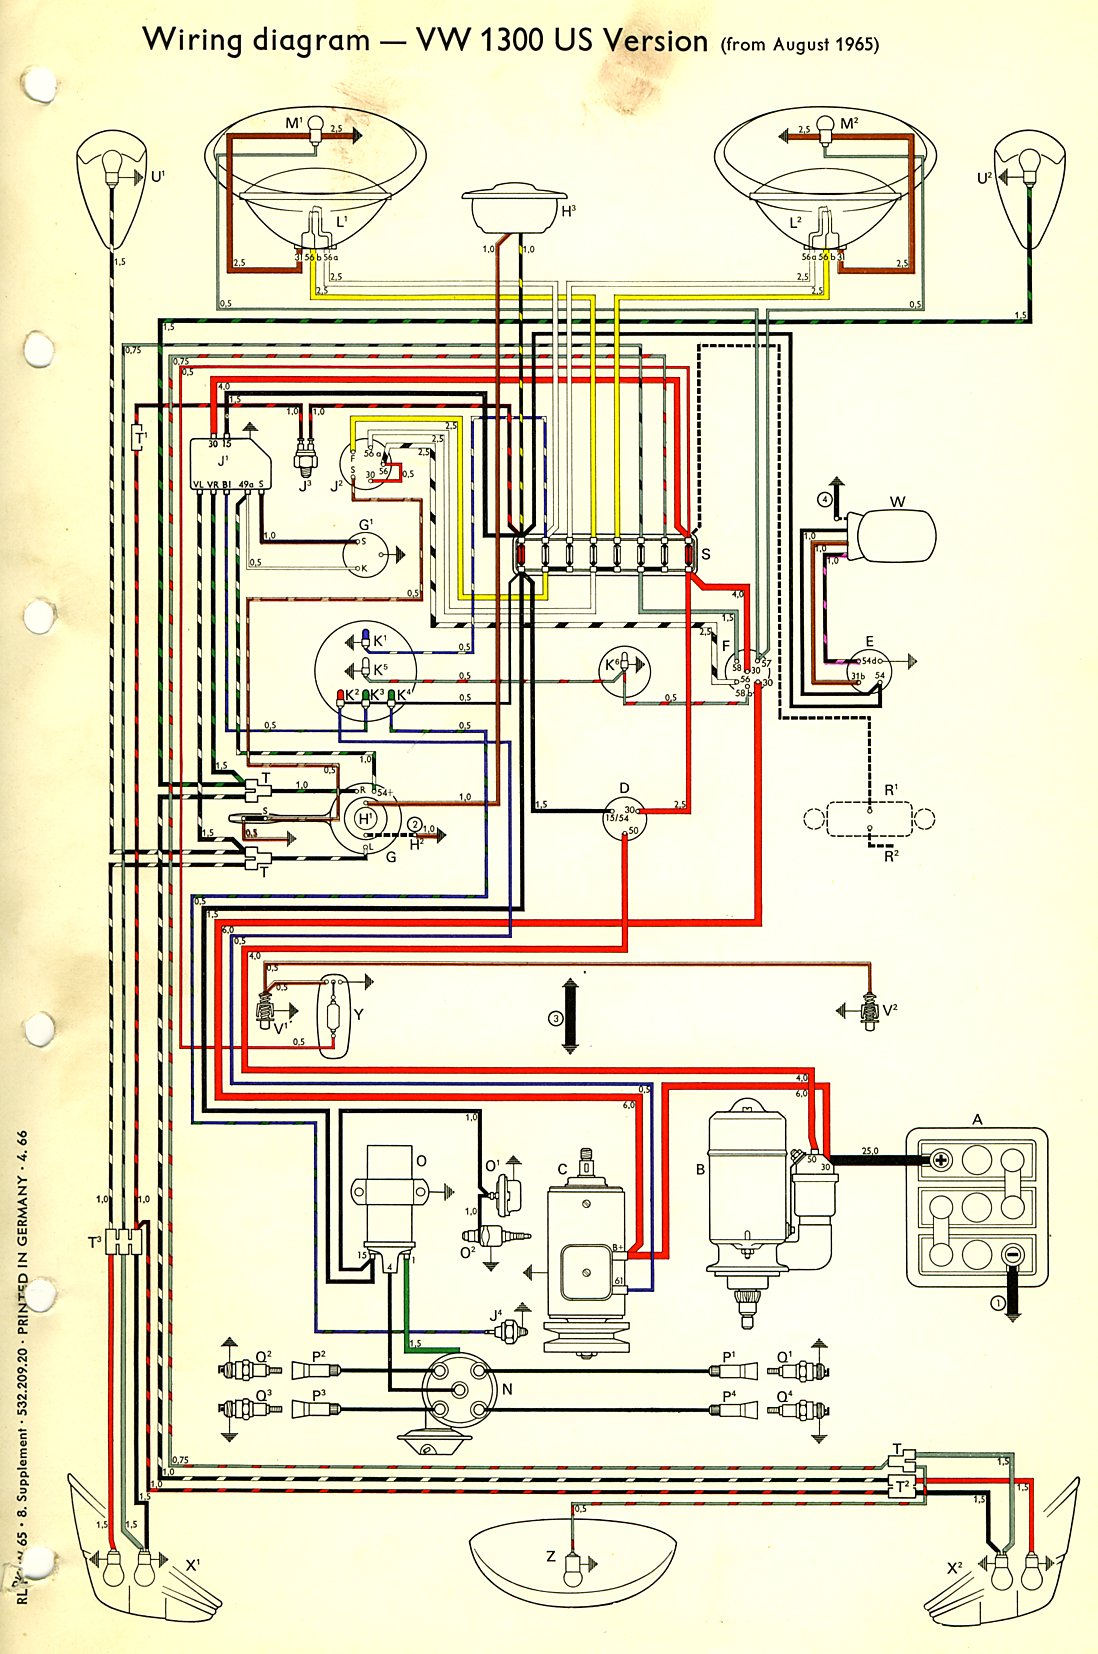 bug_66_USA thesamba com type 1 wiring diagrams vw buggy wiring diagram at soozxer.org